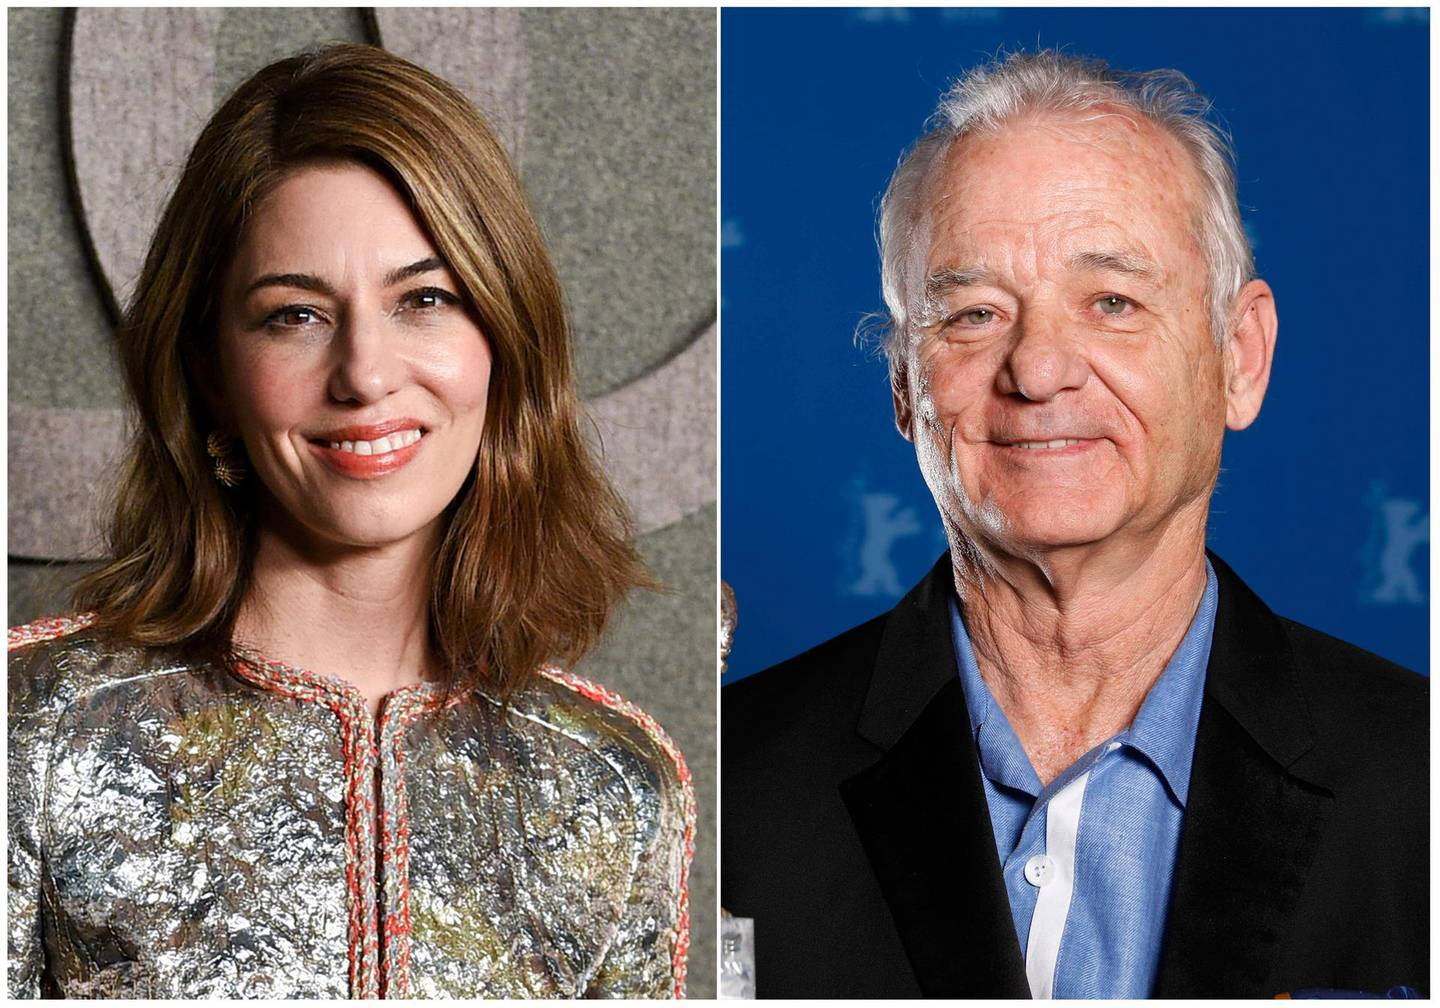 """This combination photo shows filmmaker Sofia Coppola, left, and actor Bill Murray, who will reunite 16 years after their Oscar-winning film, """"Lost in Translation"""" for """"On the Rocks,"""" a New York-set film starring Rashida Jones as a young mother who reconnects with her larger-than-life father, to be played by Murray. The film, which Coppola also wrote, will begin this spring in New York. (AP Photo)"""